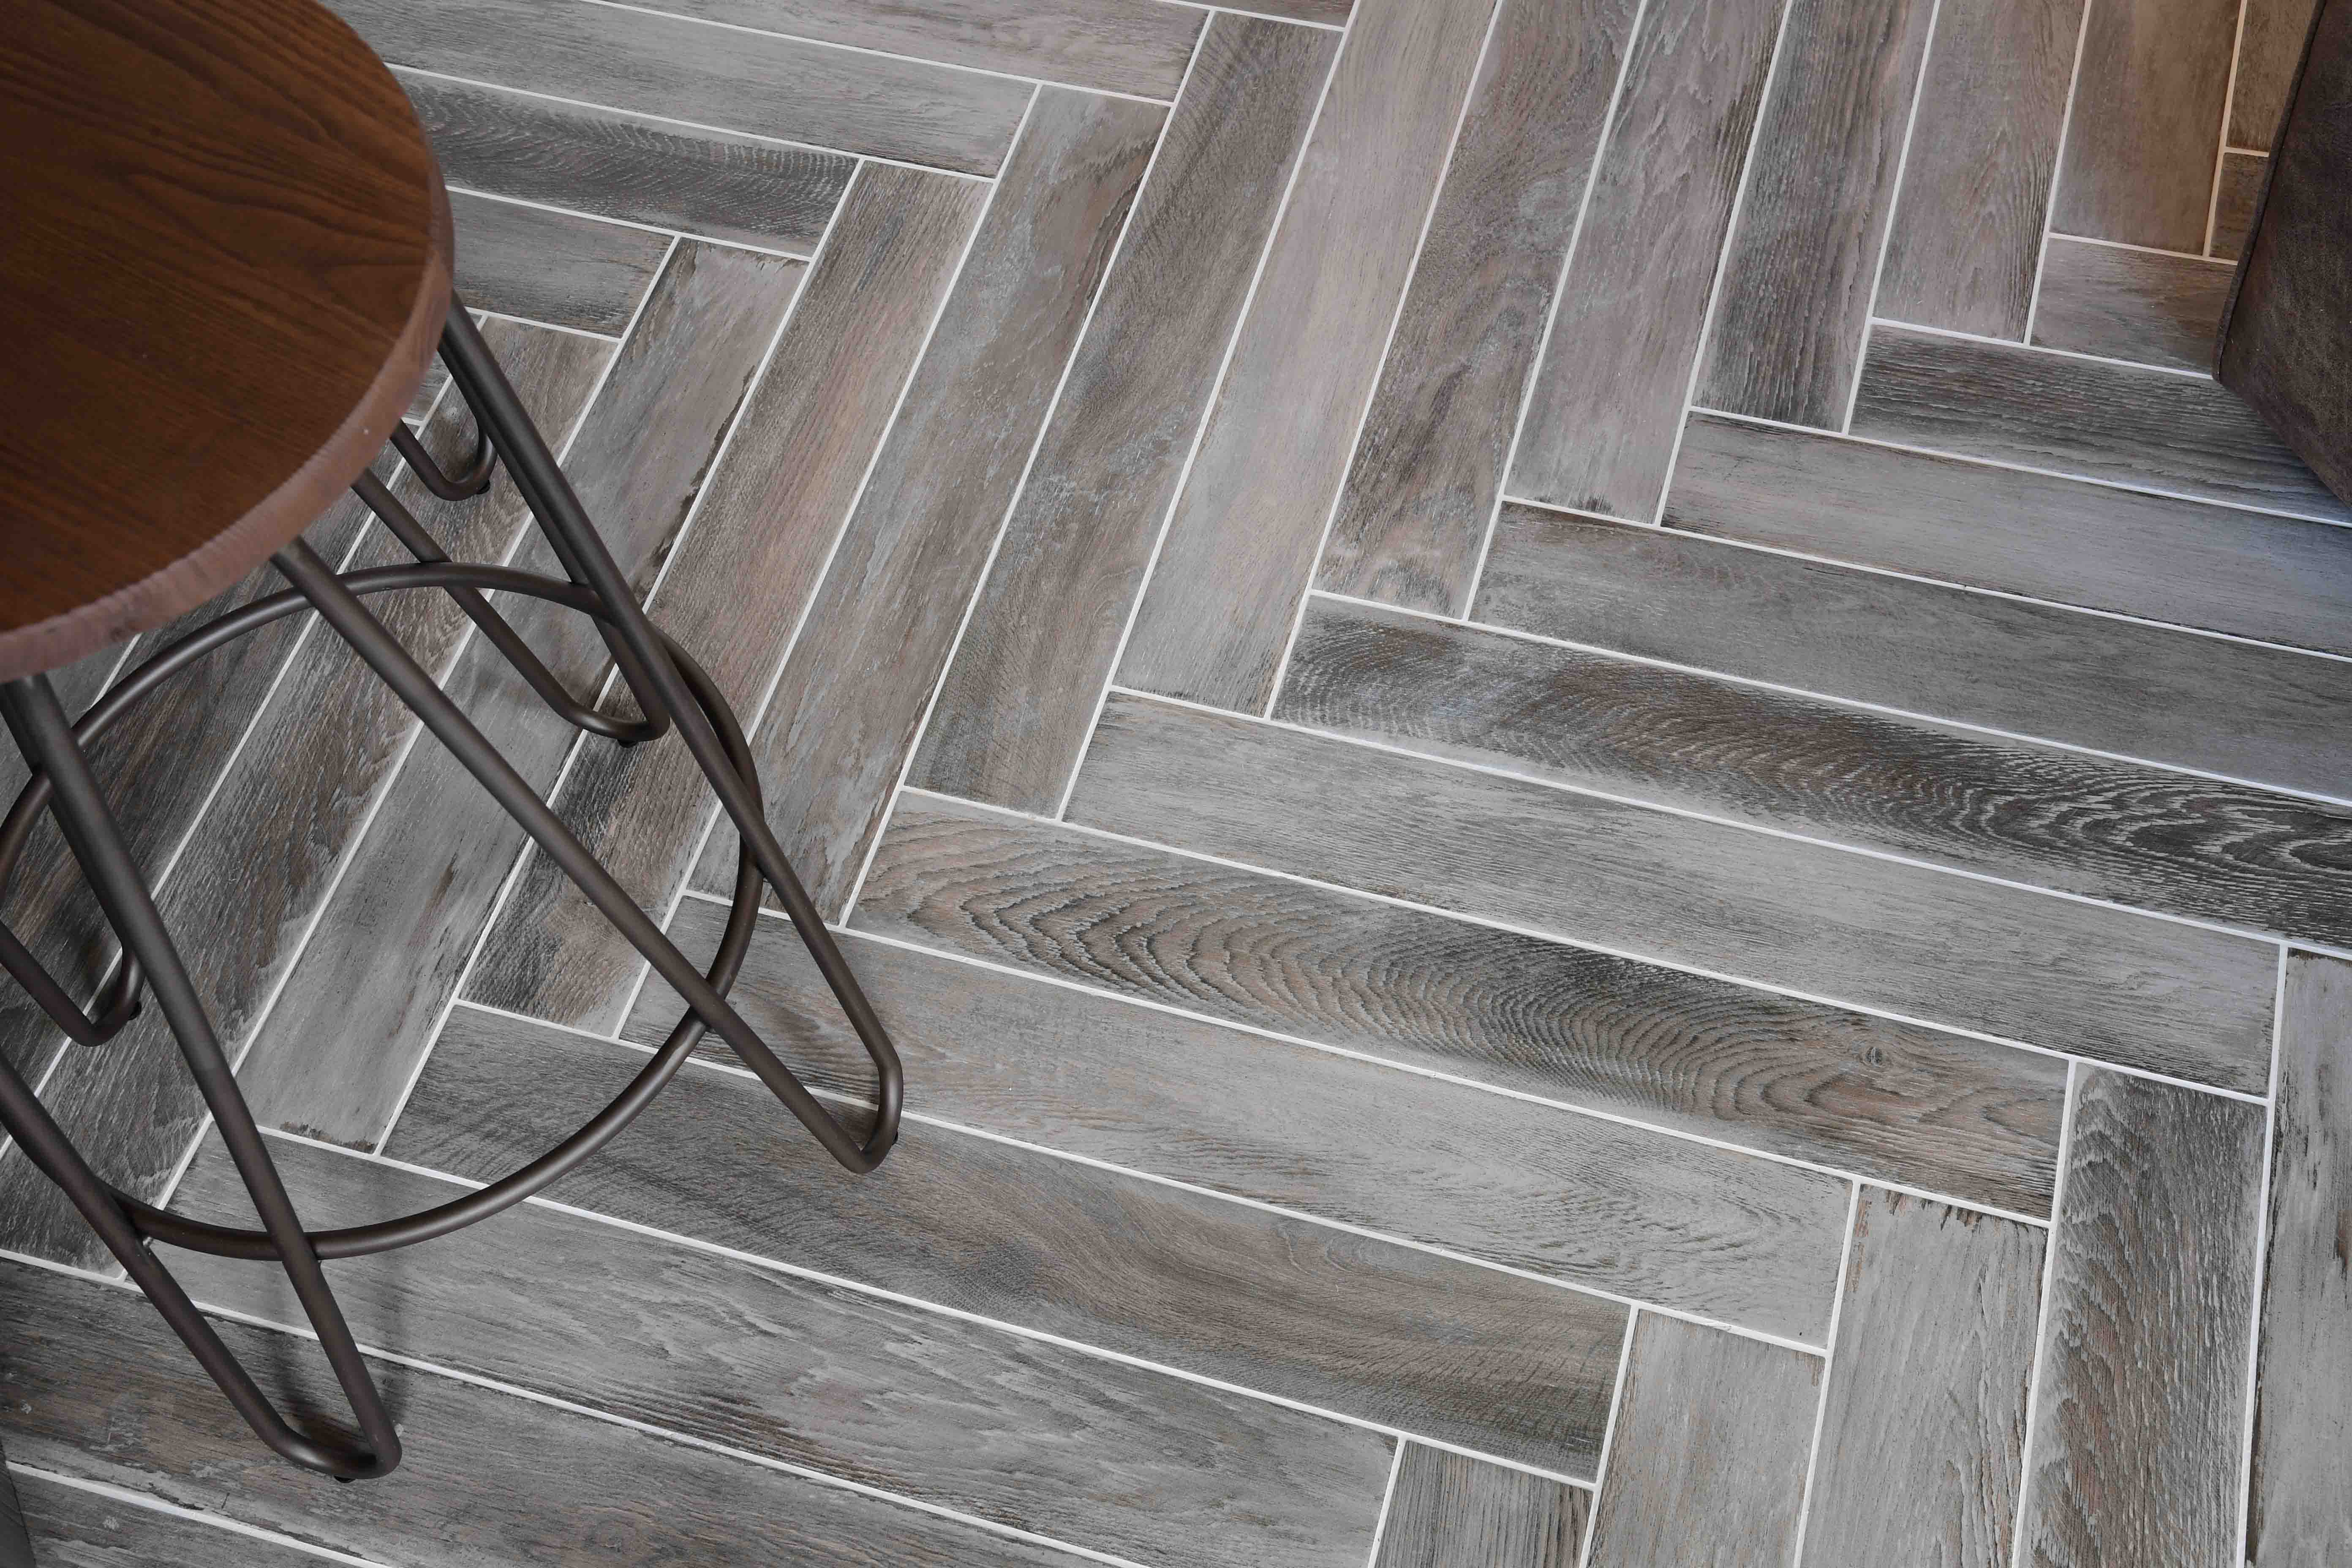 Why would you choose a wood effect porcelain